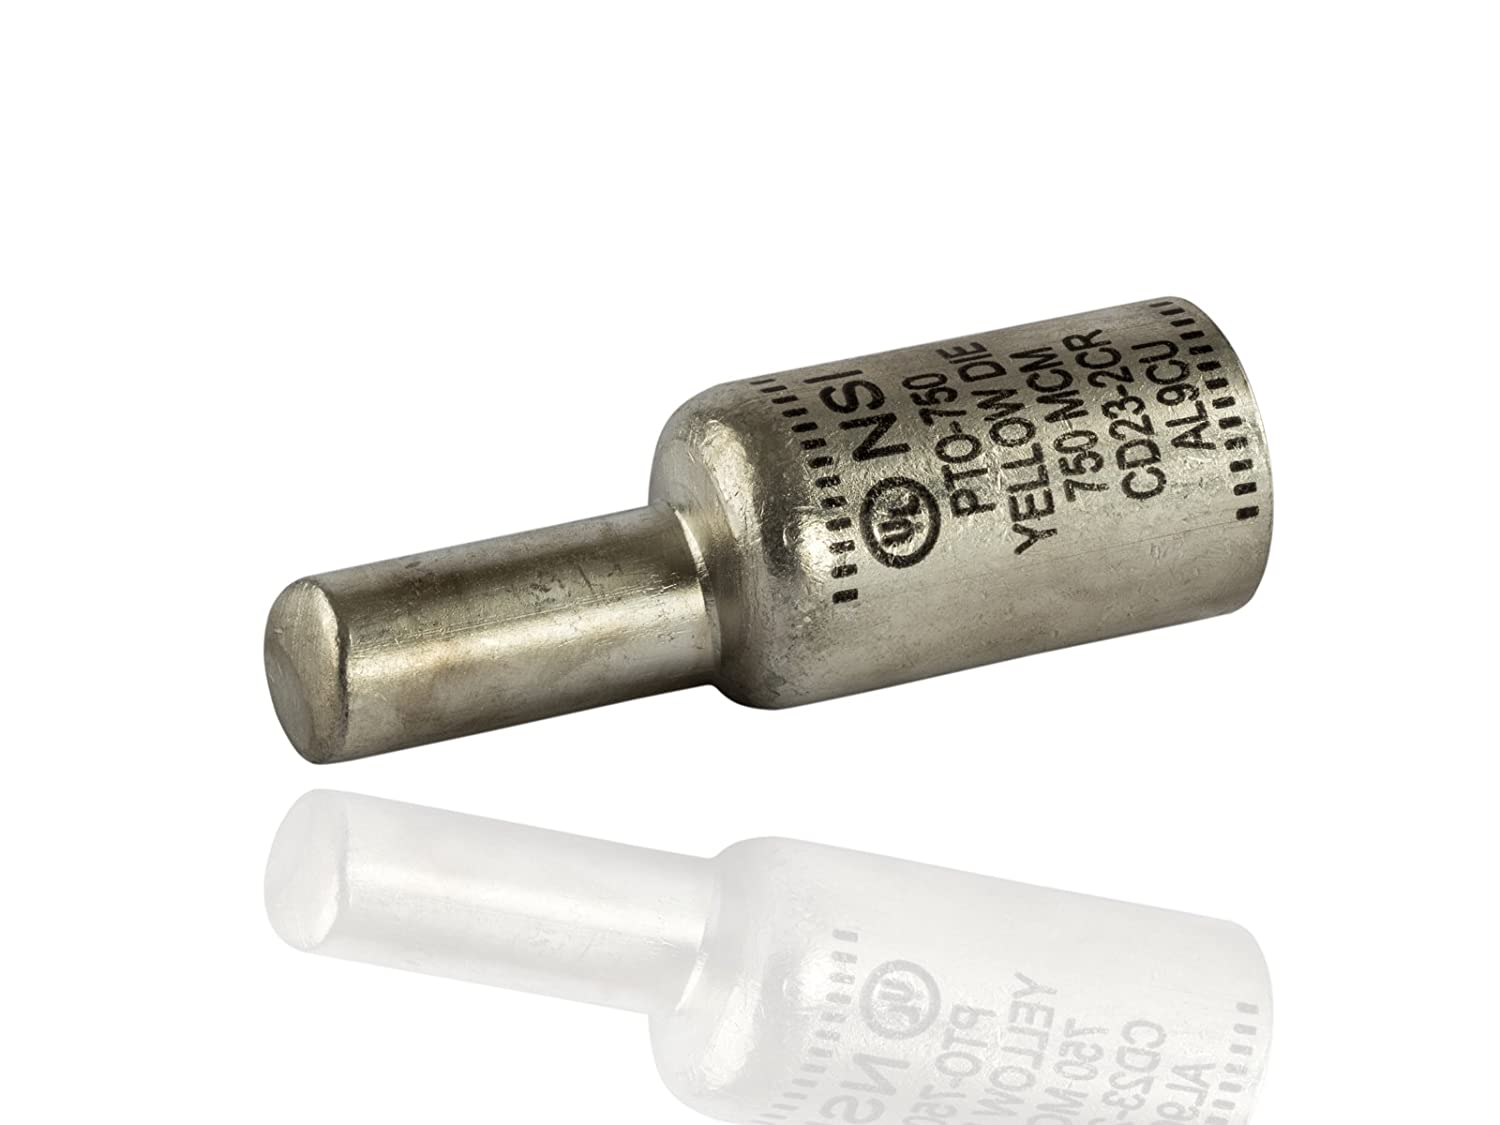 Offset Pin Terminal 1.46 OD Dual Rated Compression Connector 500 Pin Size Yellow 1.46 OD 4.20 Length NSi Industries PTO-750 PTO Series 4.20 Length 750 Wire Size